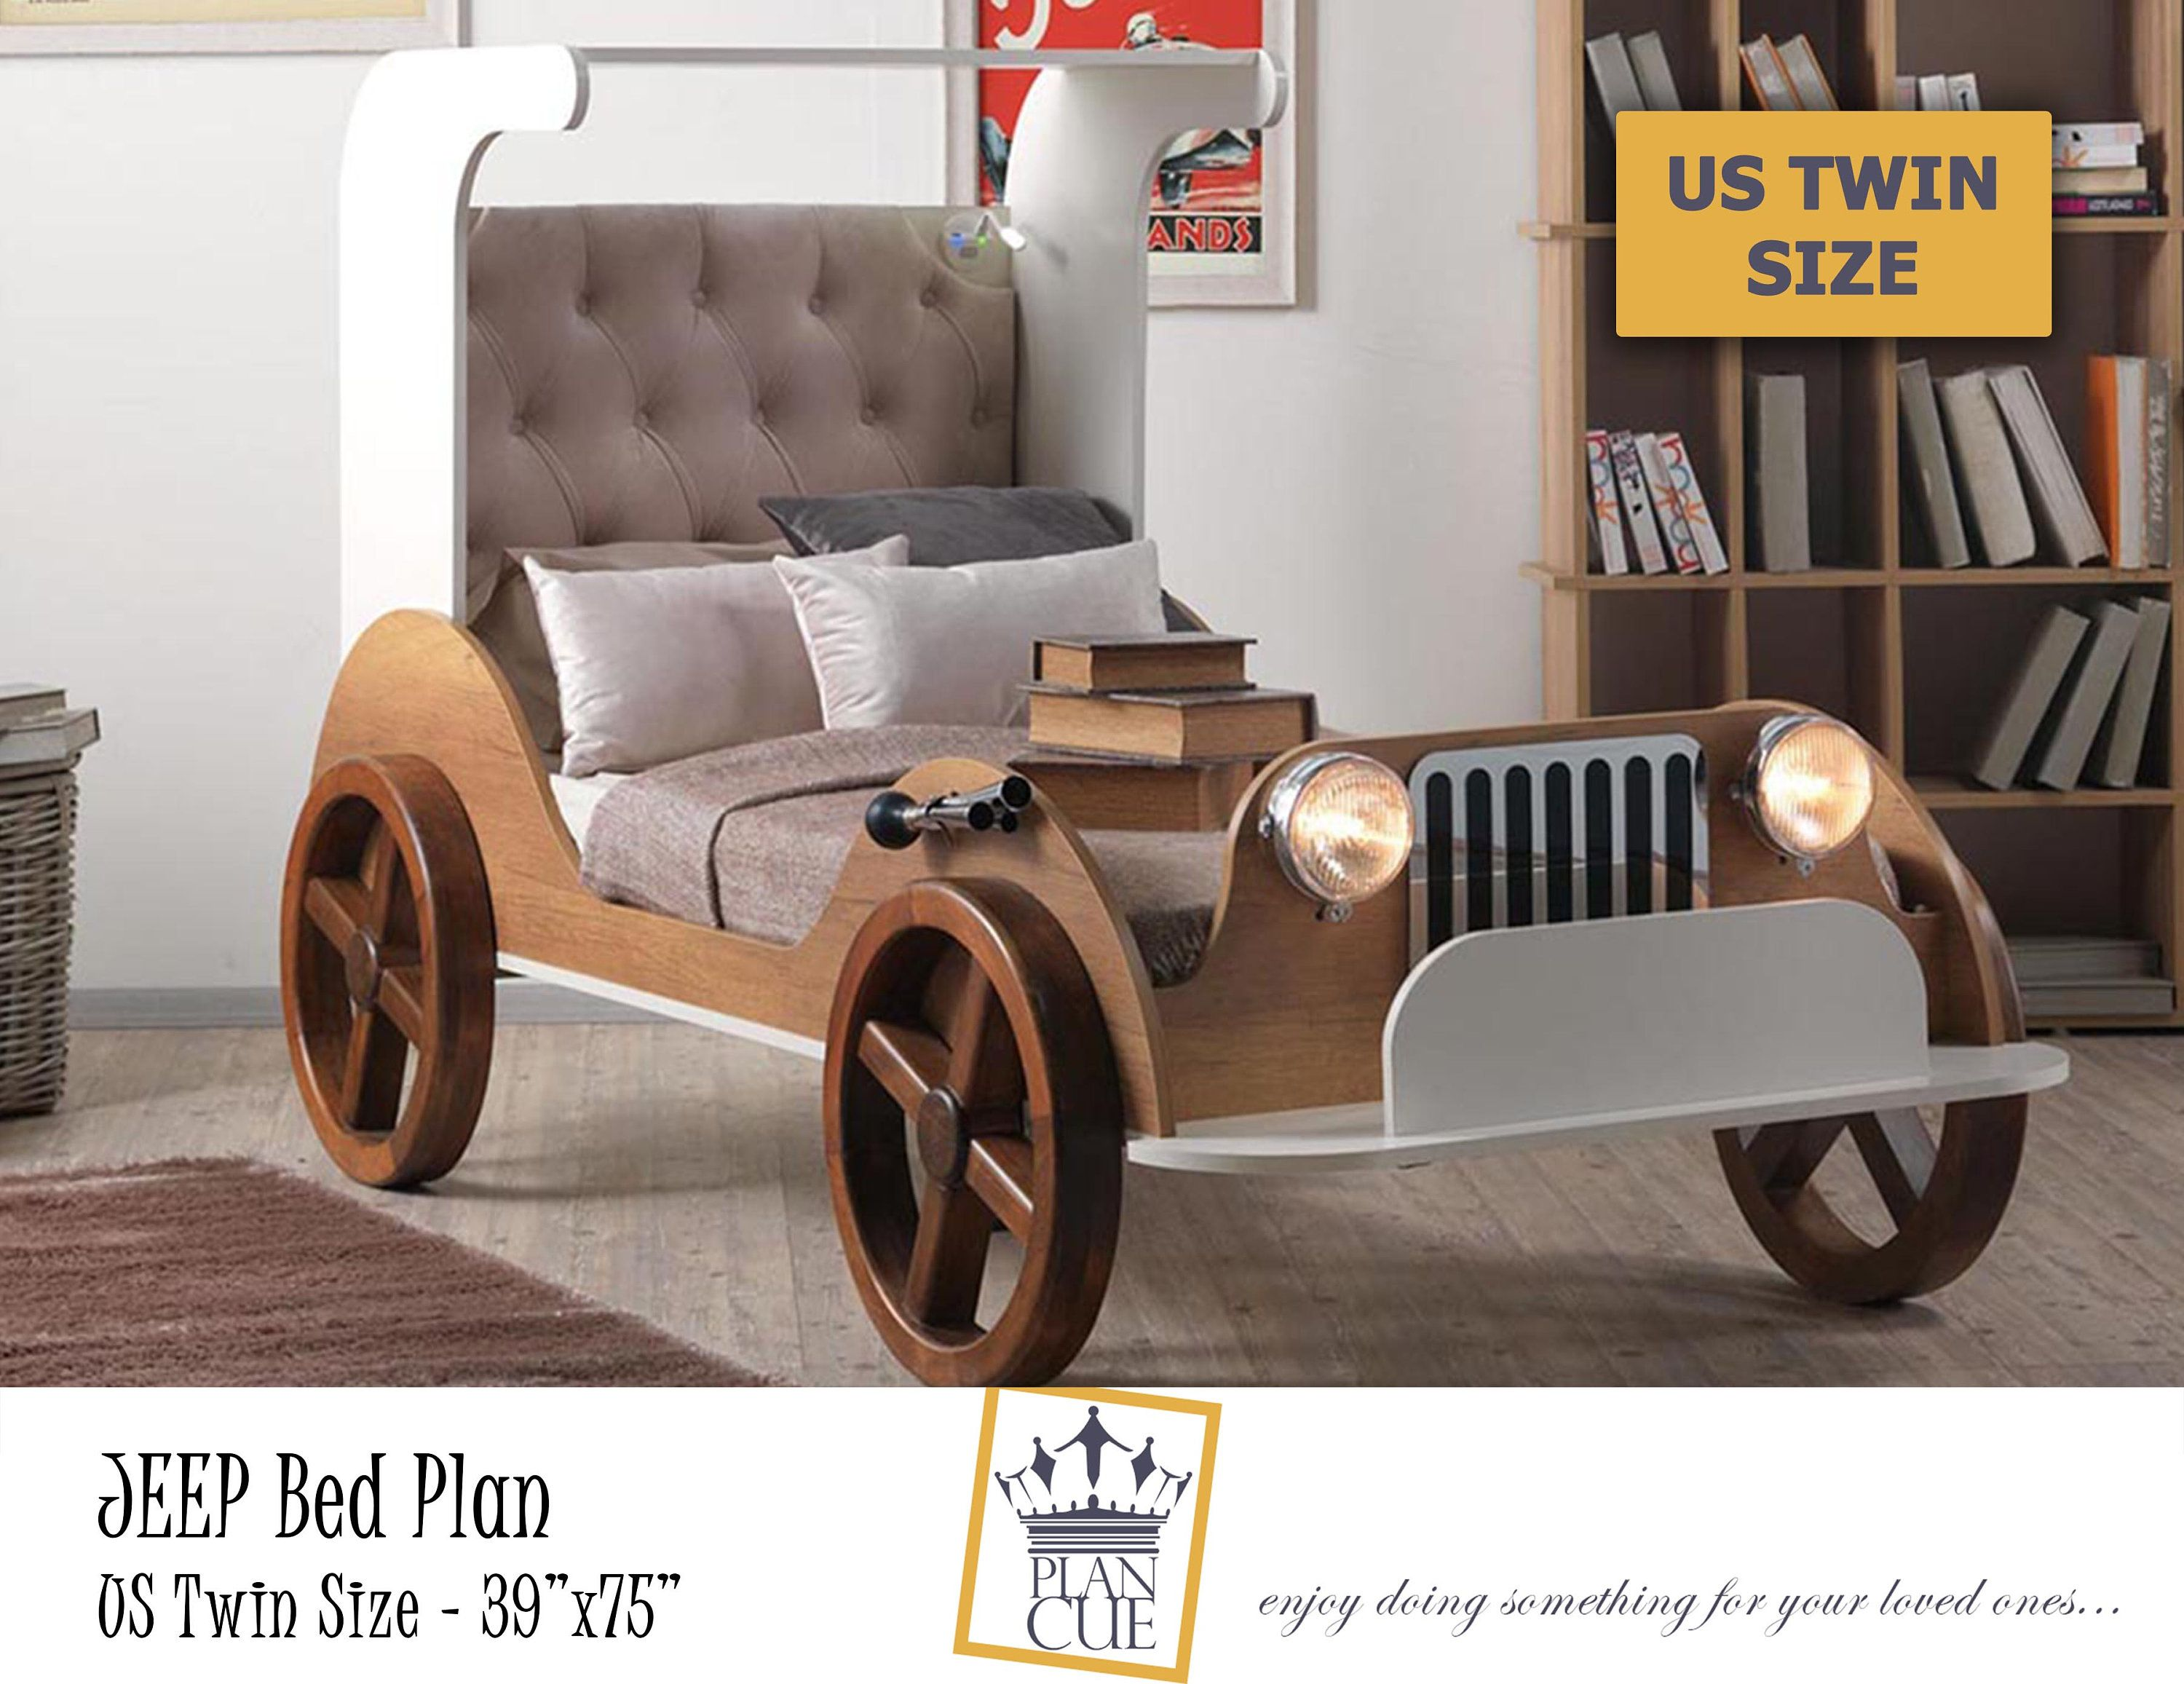 Pin By Plan Cue On Themed Bed Plans Toddler Car Bed Toddler Bed